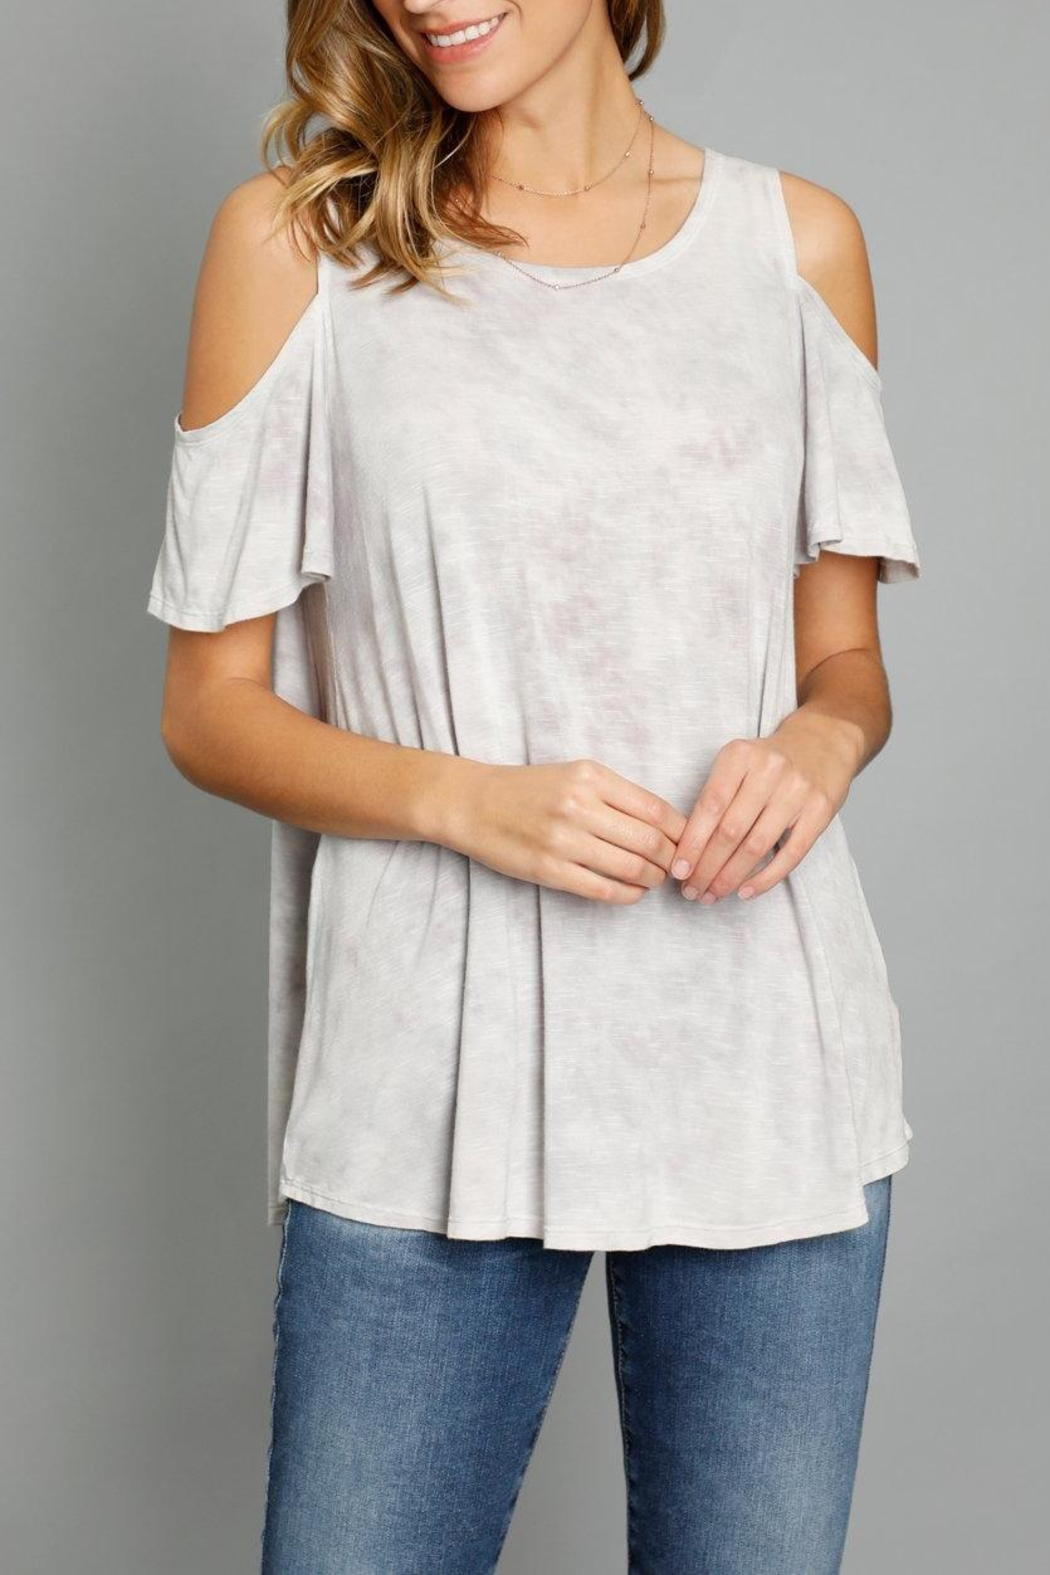 Mod-o-doc Cold Shoulder Top - Main Image